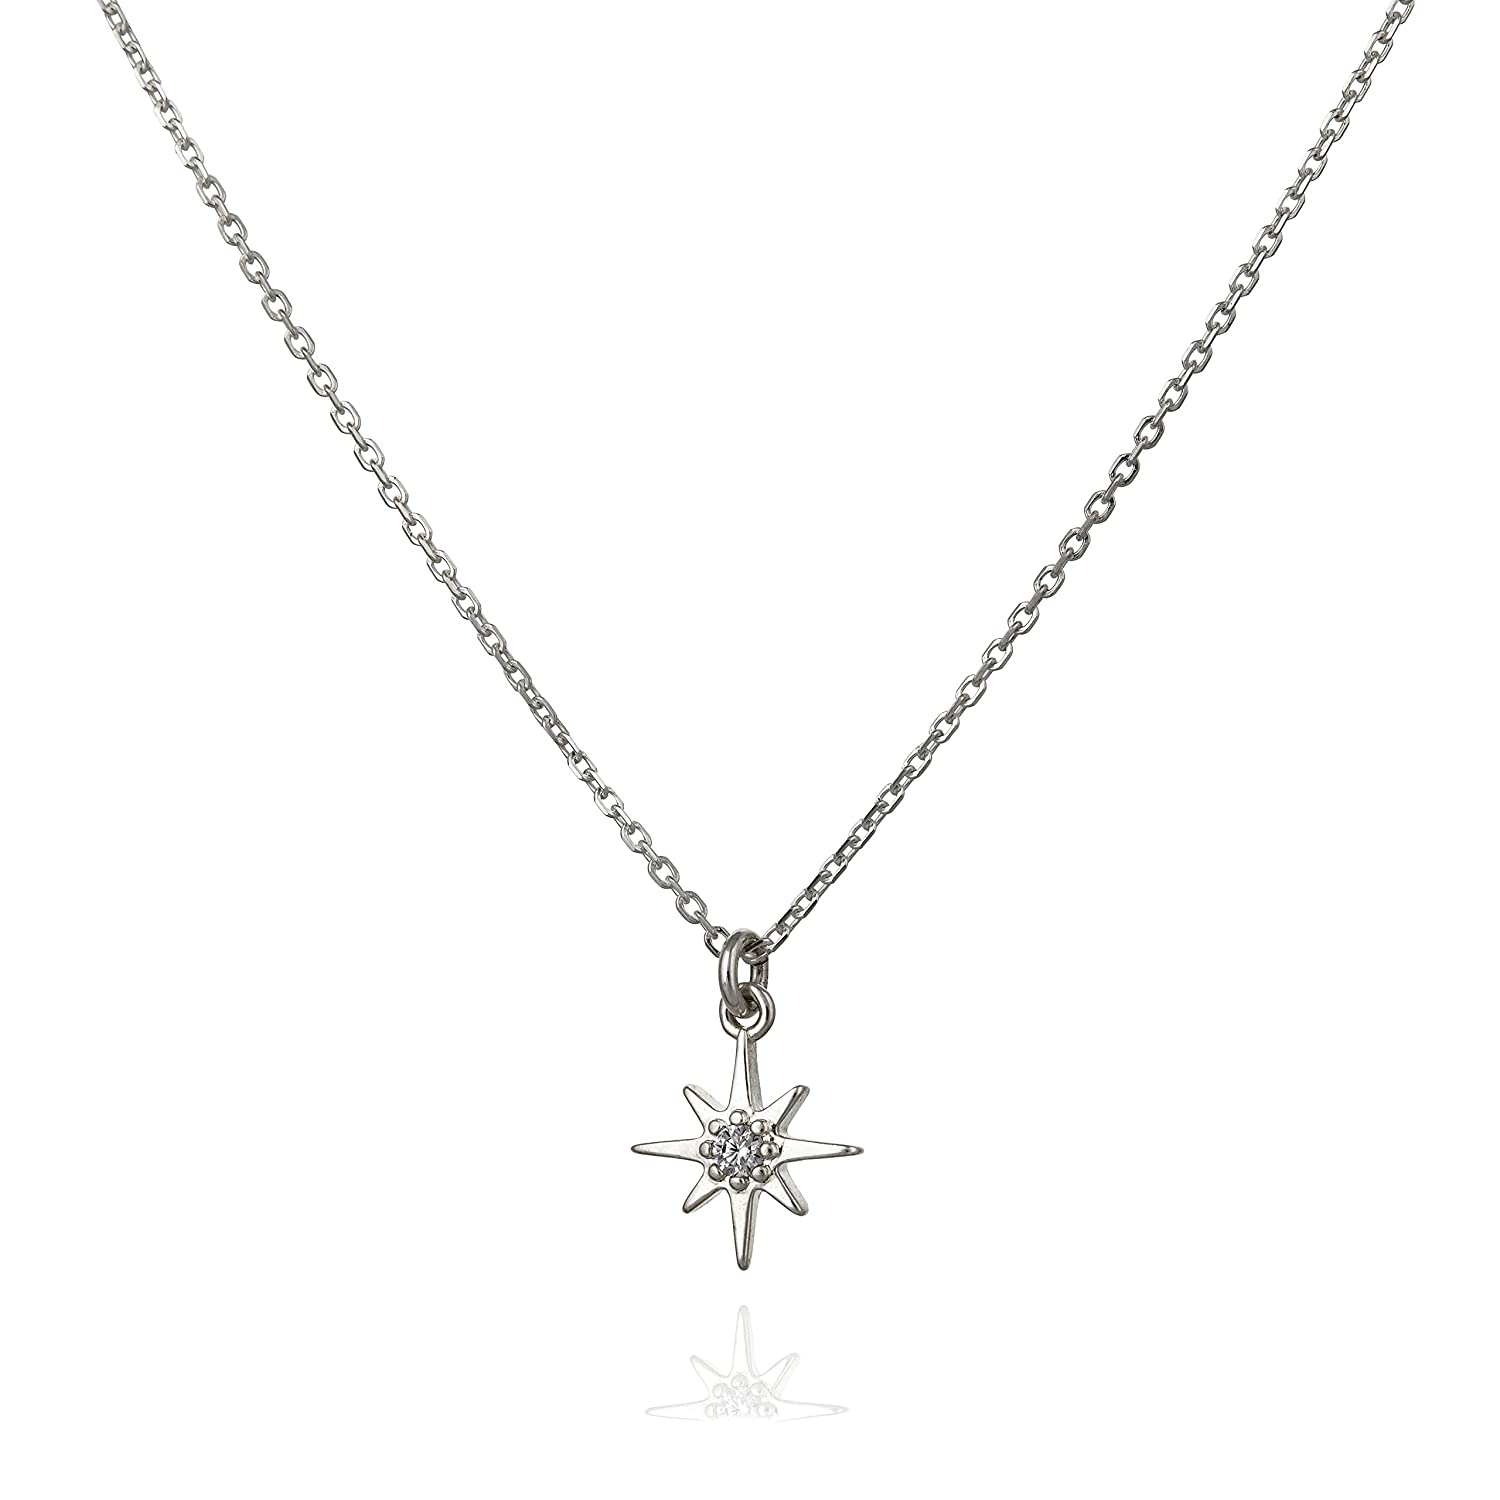 Annikabella Tiny Thin Super sale period limited Silver North Dainty Finally resale start Pendant Necklace Star